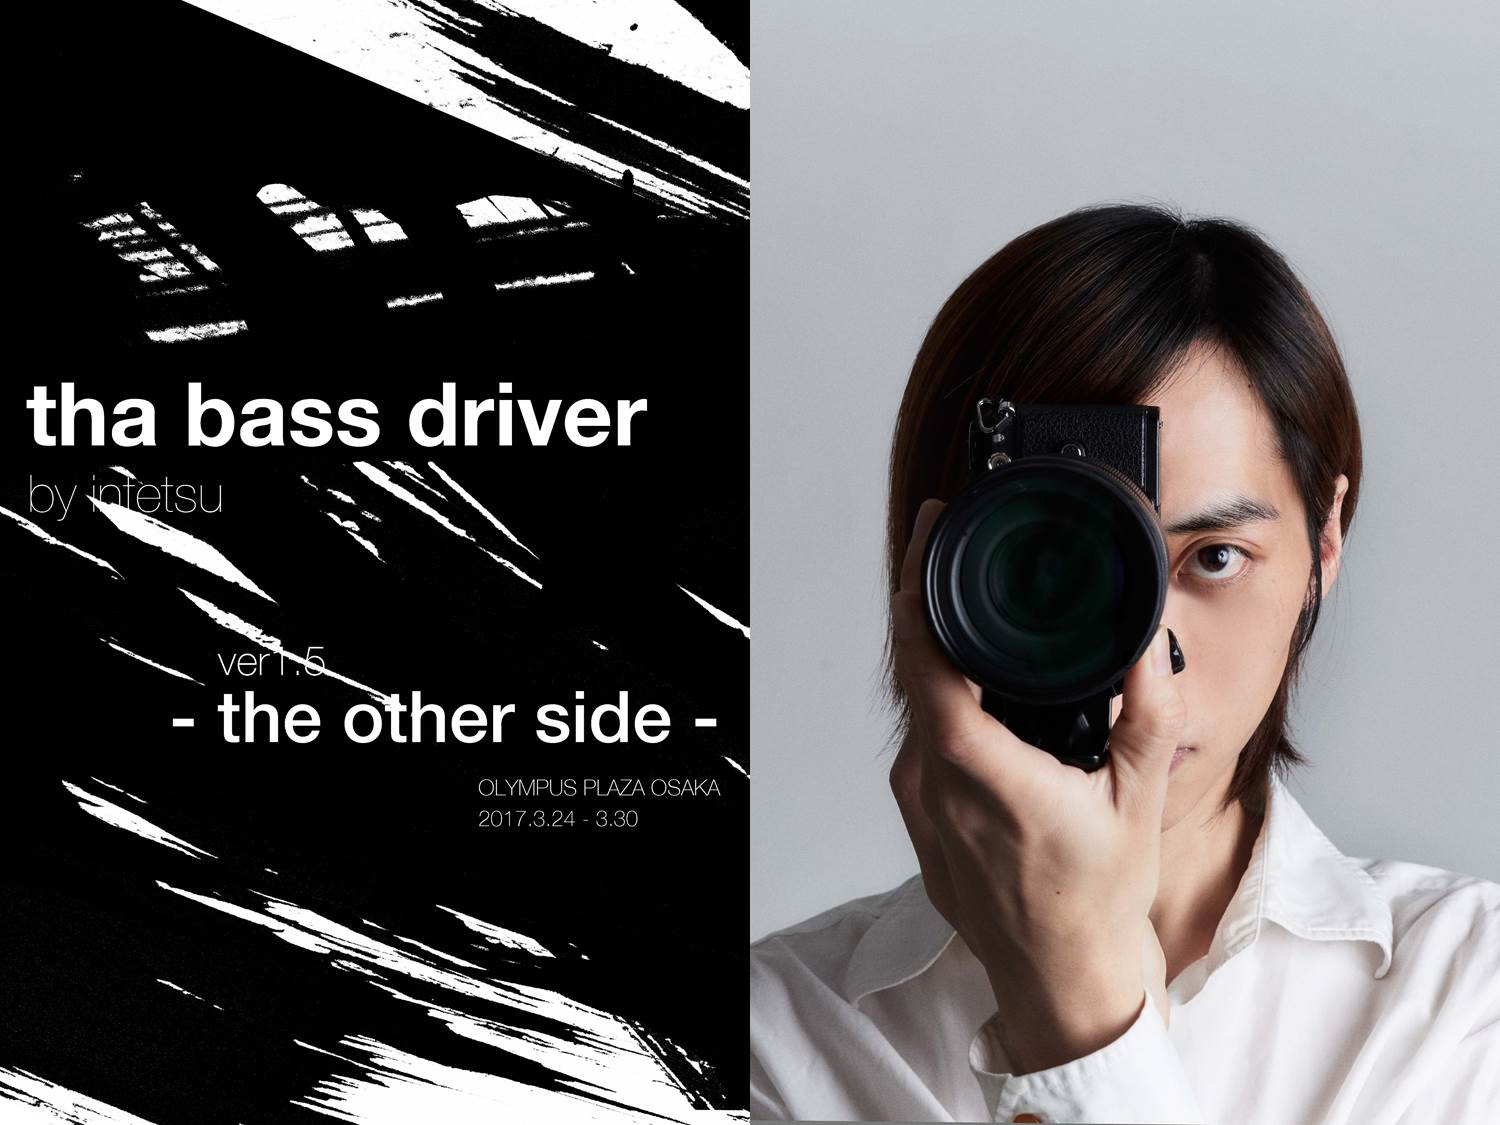 3/24(金)インテツ写真展「tha bass driver ver.1.5 -the other side-」